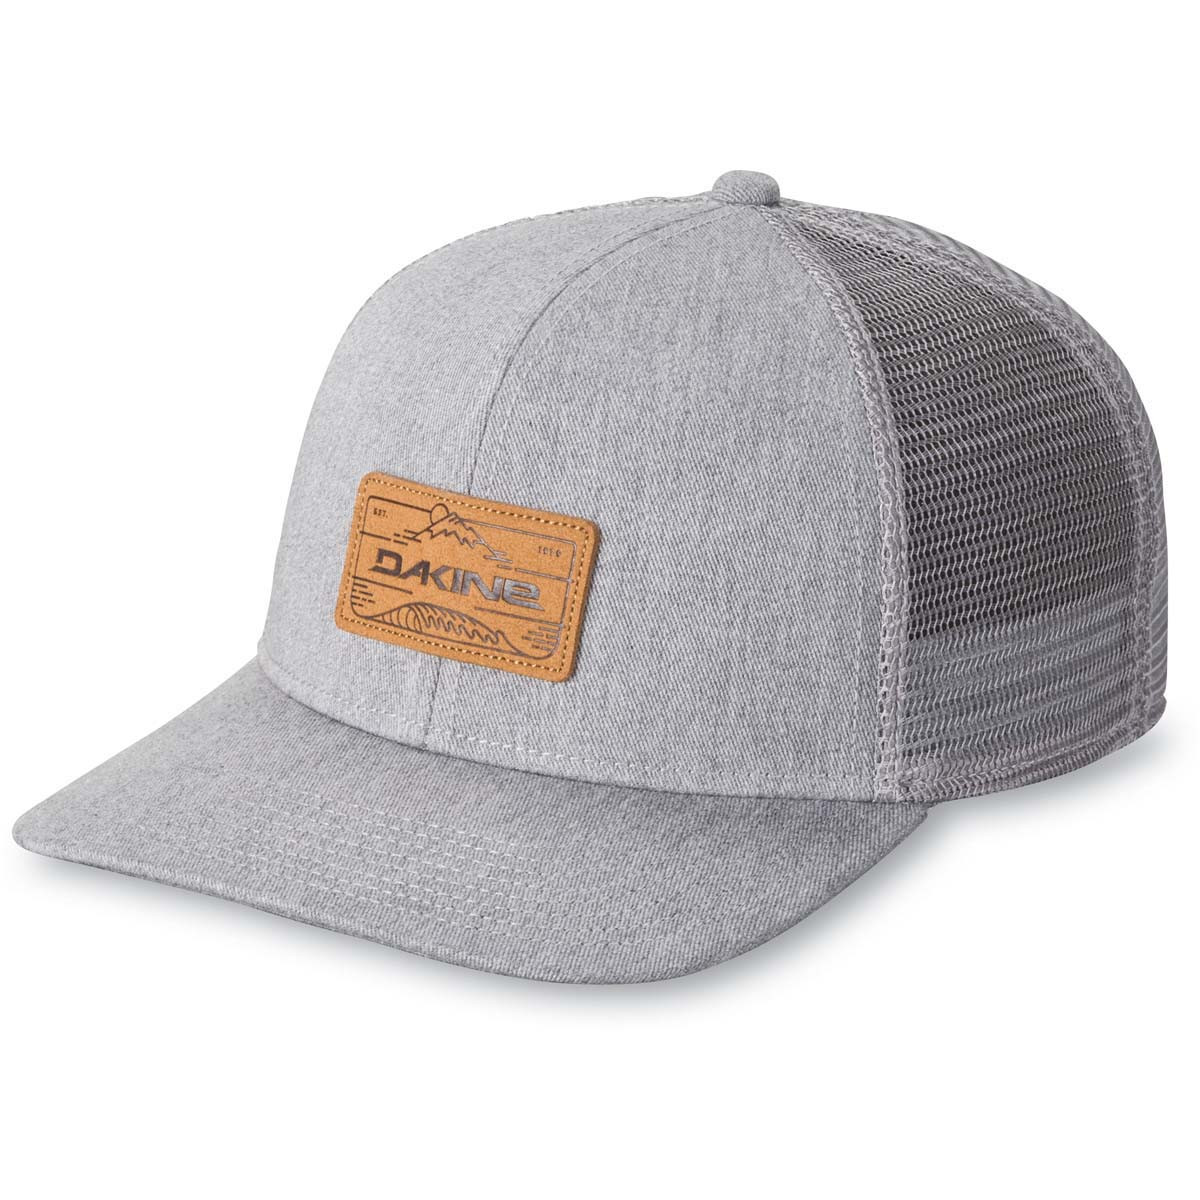 2181ccc5f Dakine Peak To Peak Trucker Cap Heather Grey